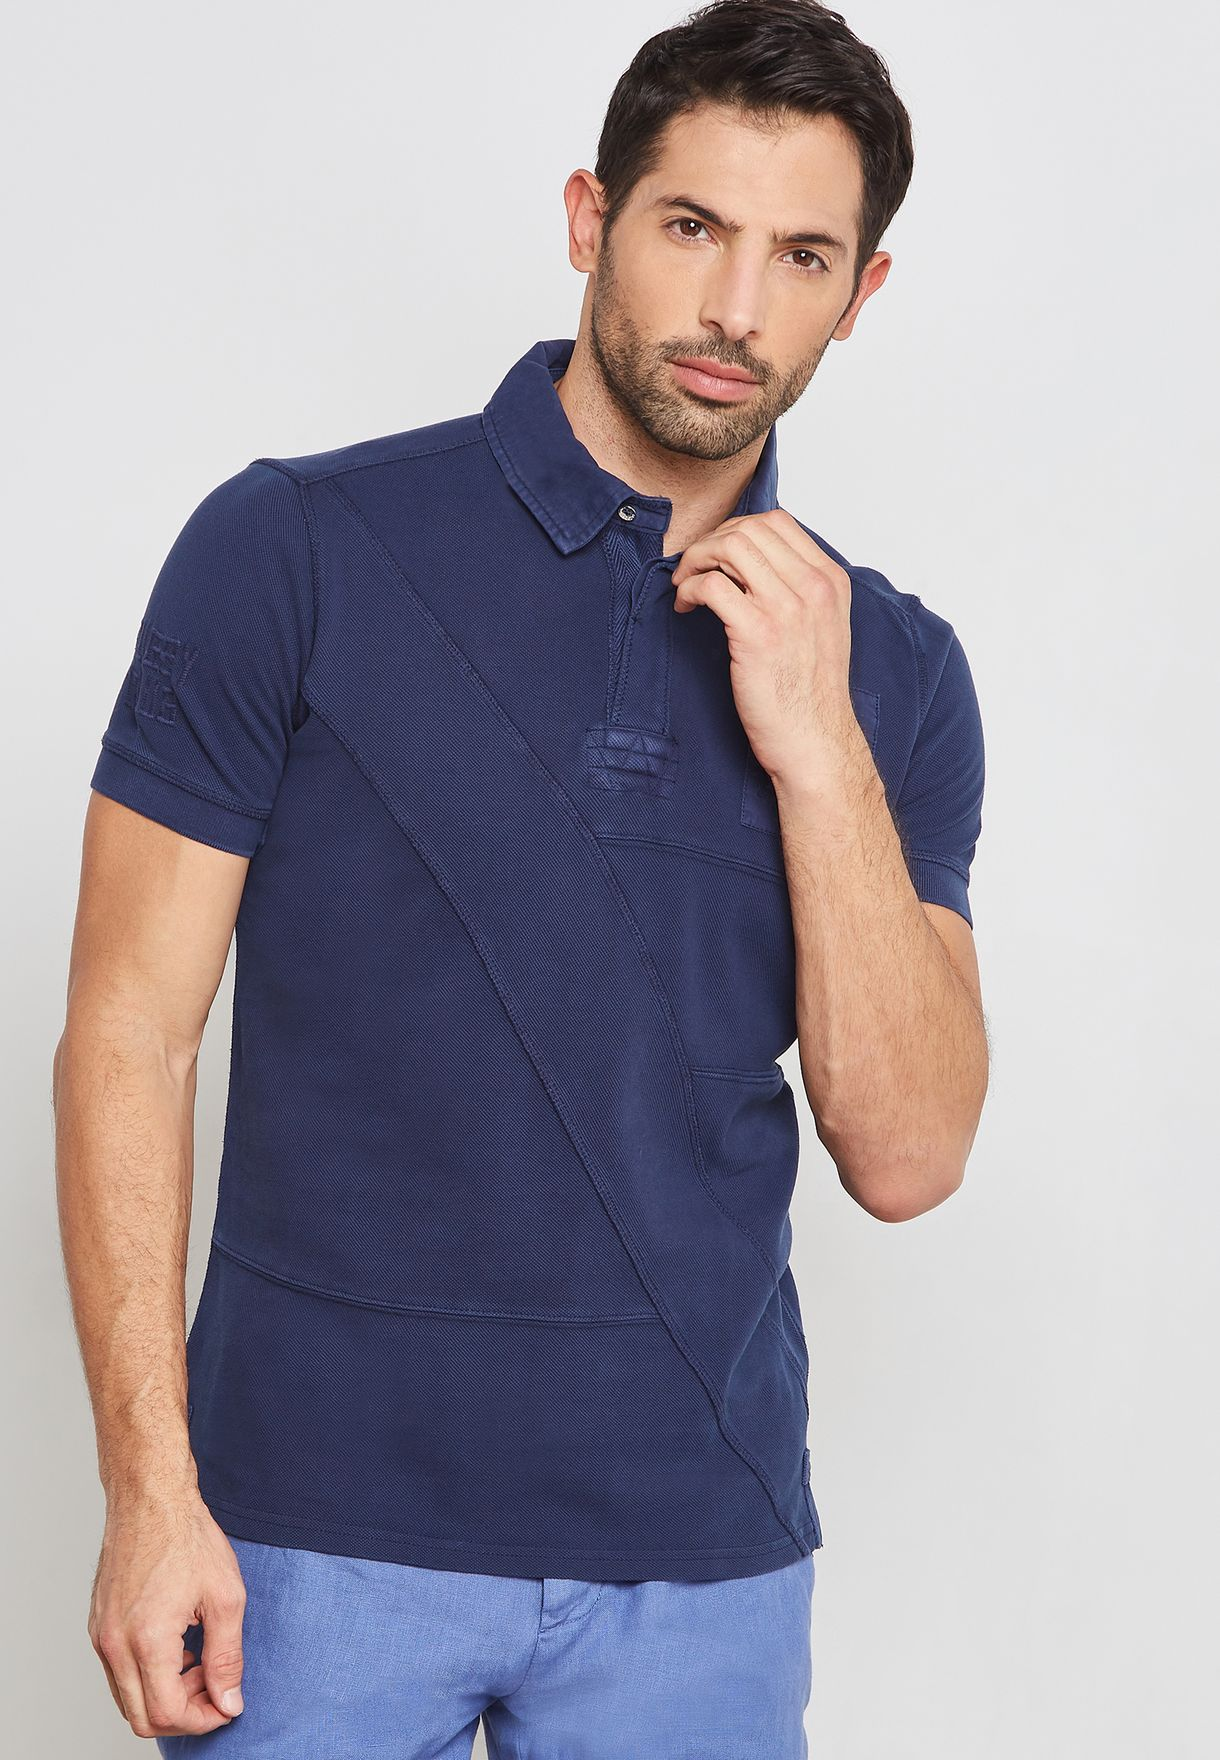 Taylored Polo